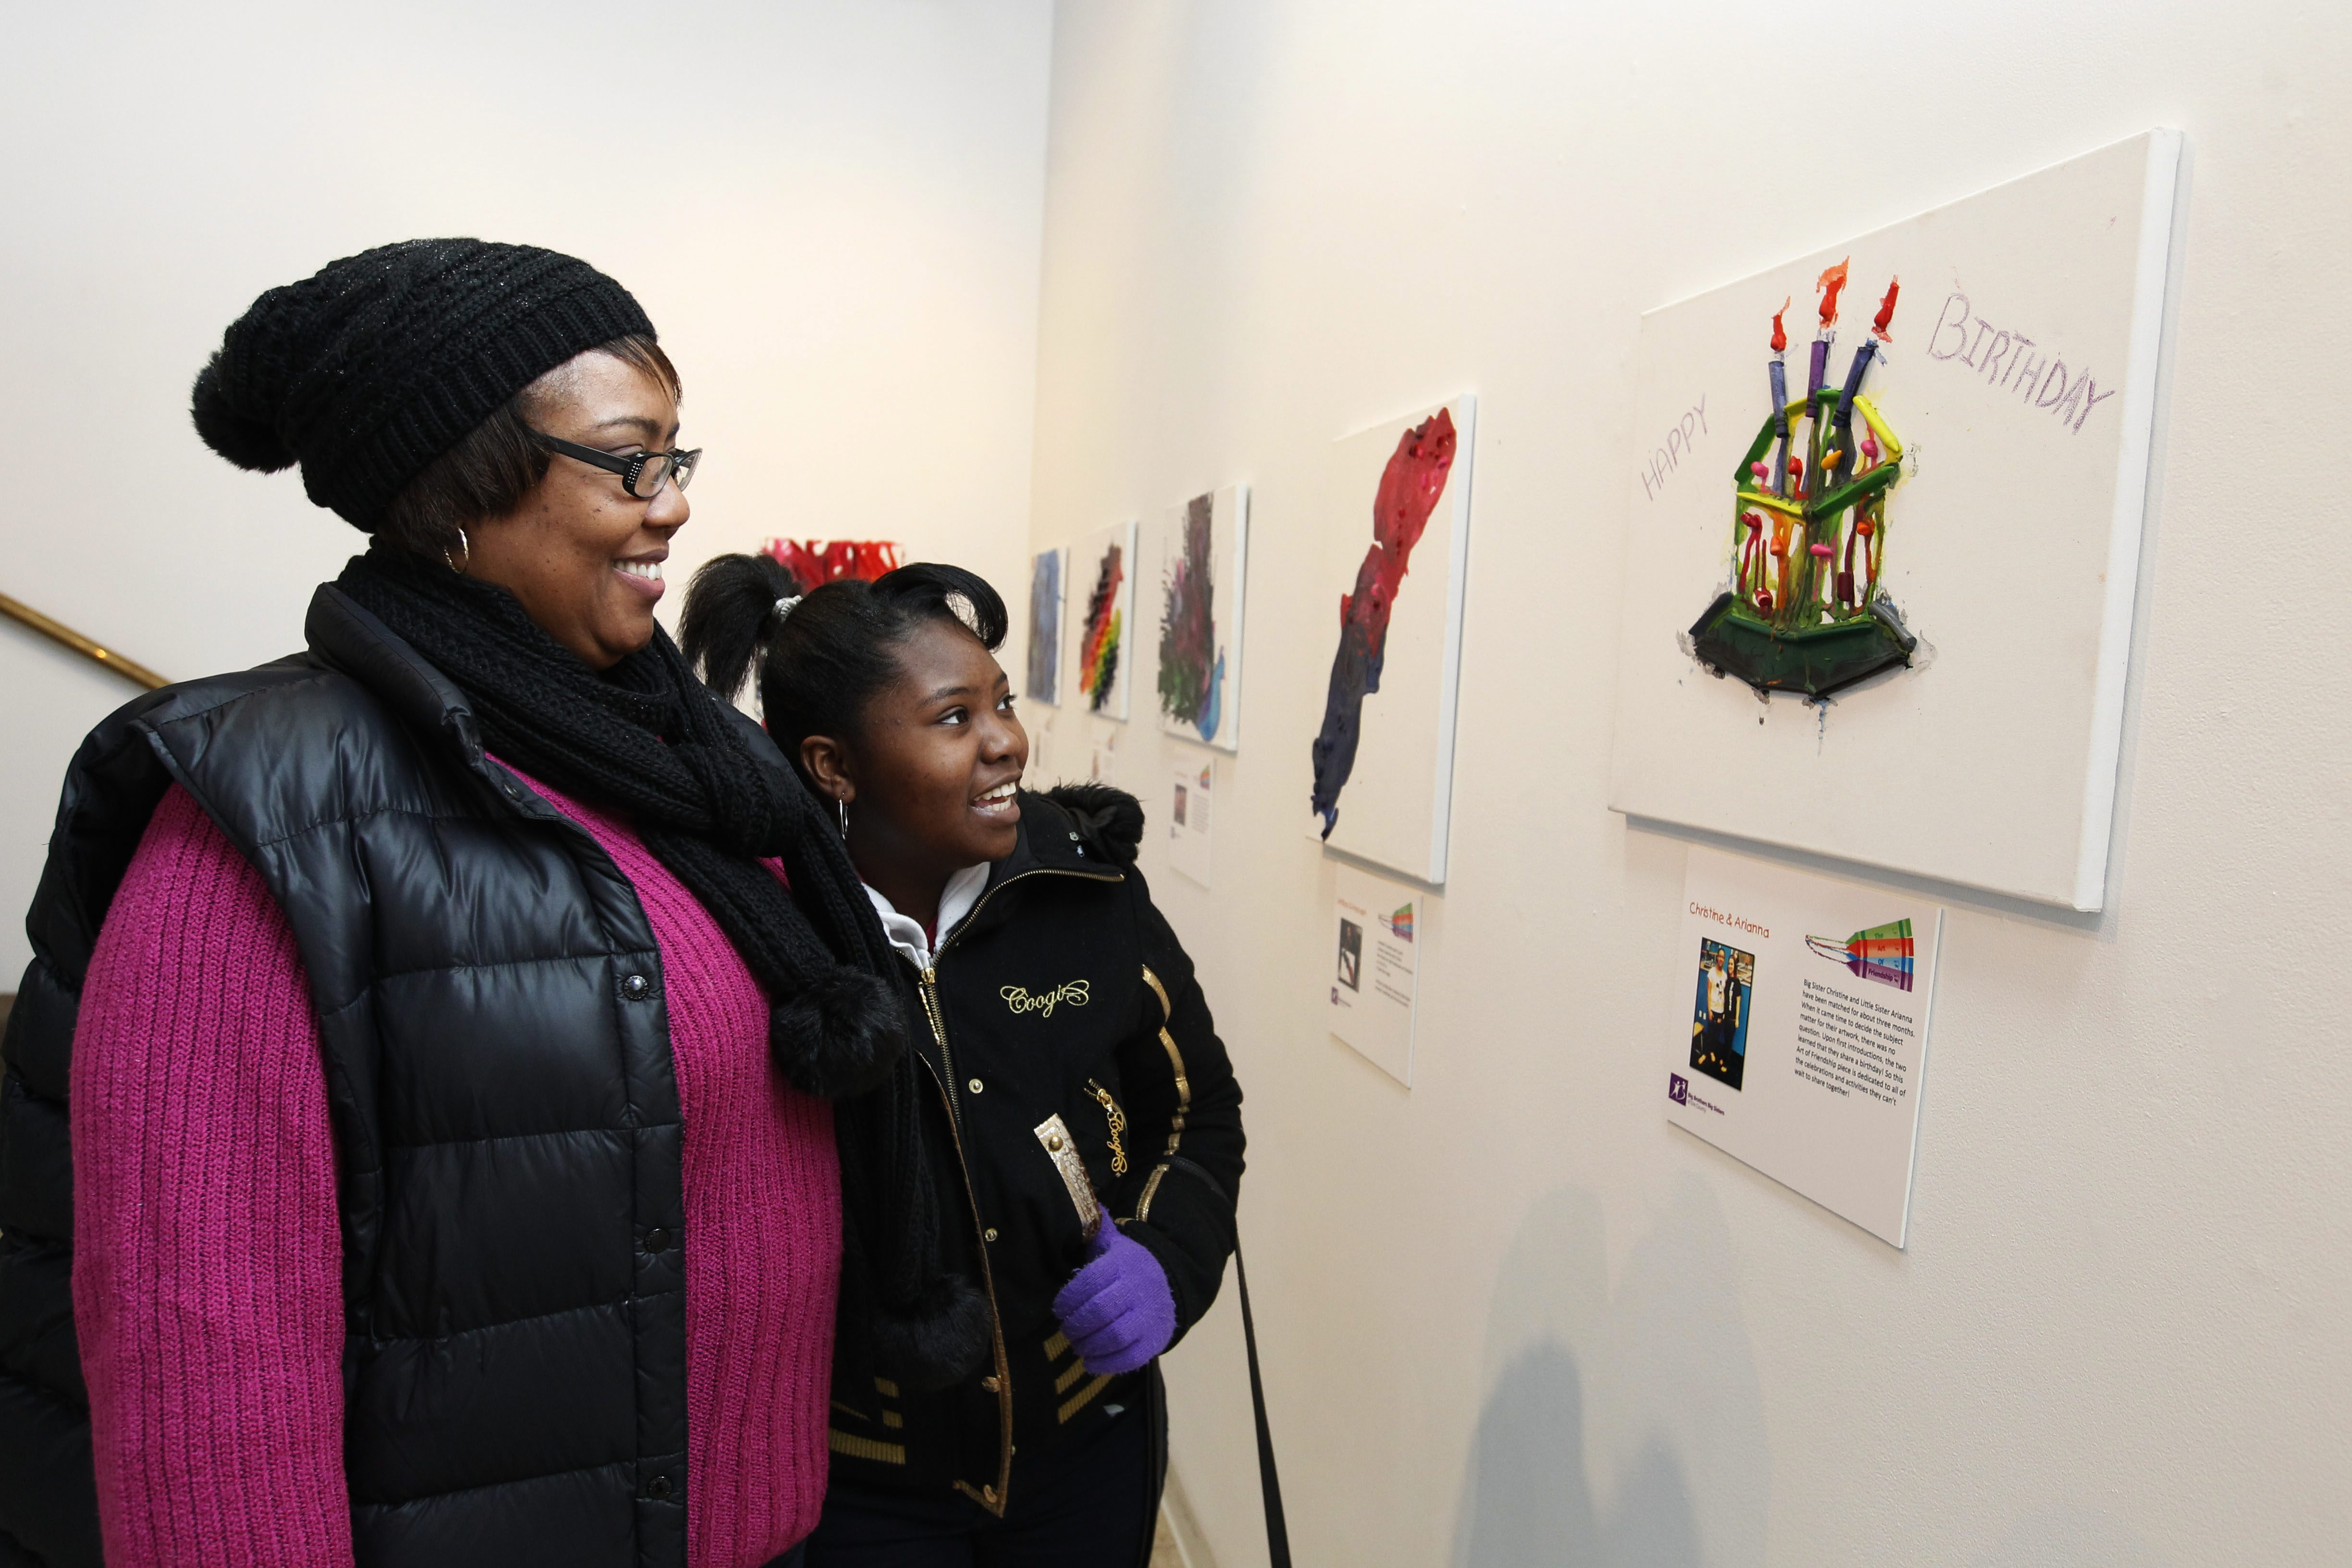 The Starlight Studio will celebrate its 10th anniversary on Friday with a special event. Pictured visiting Starlight in January are Angela Whatley and Lechee Mack.